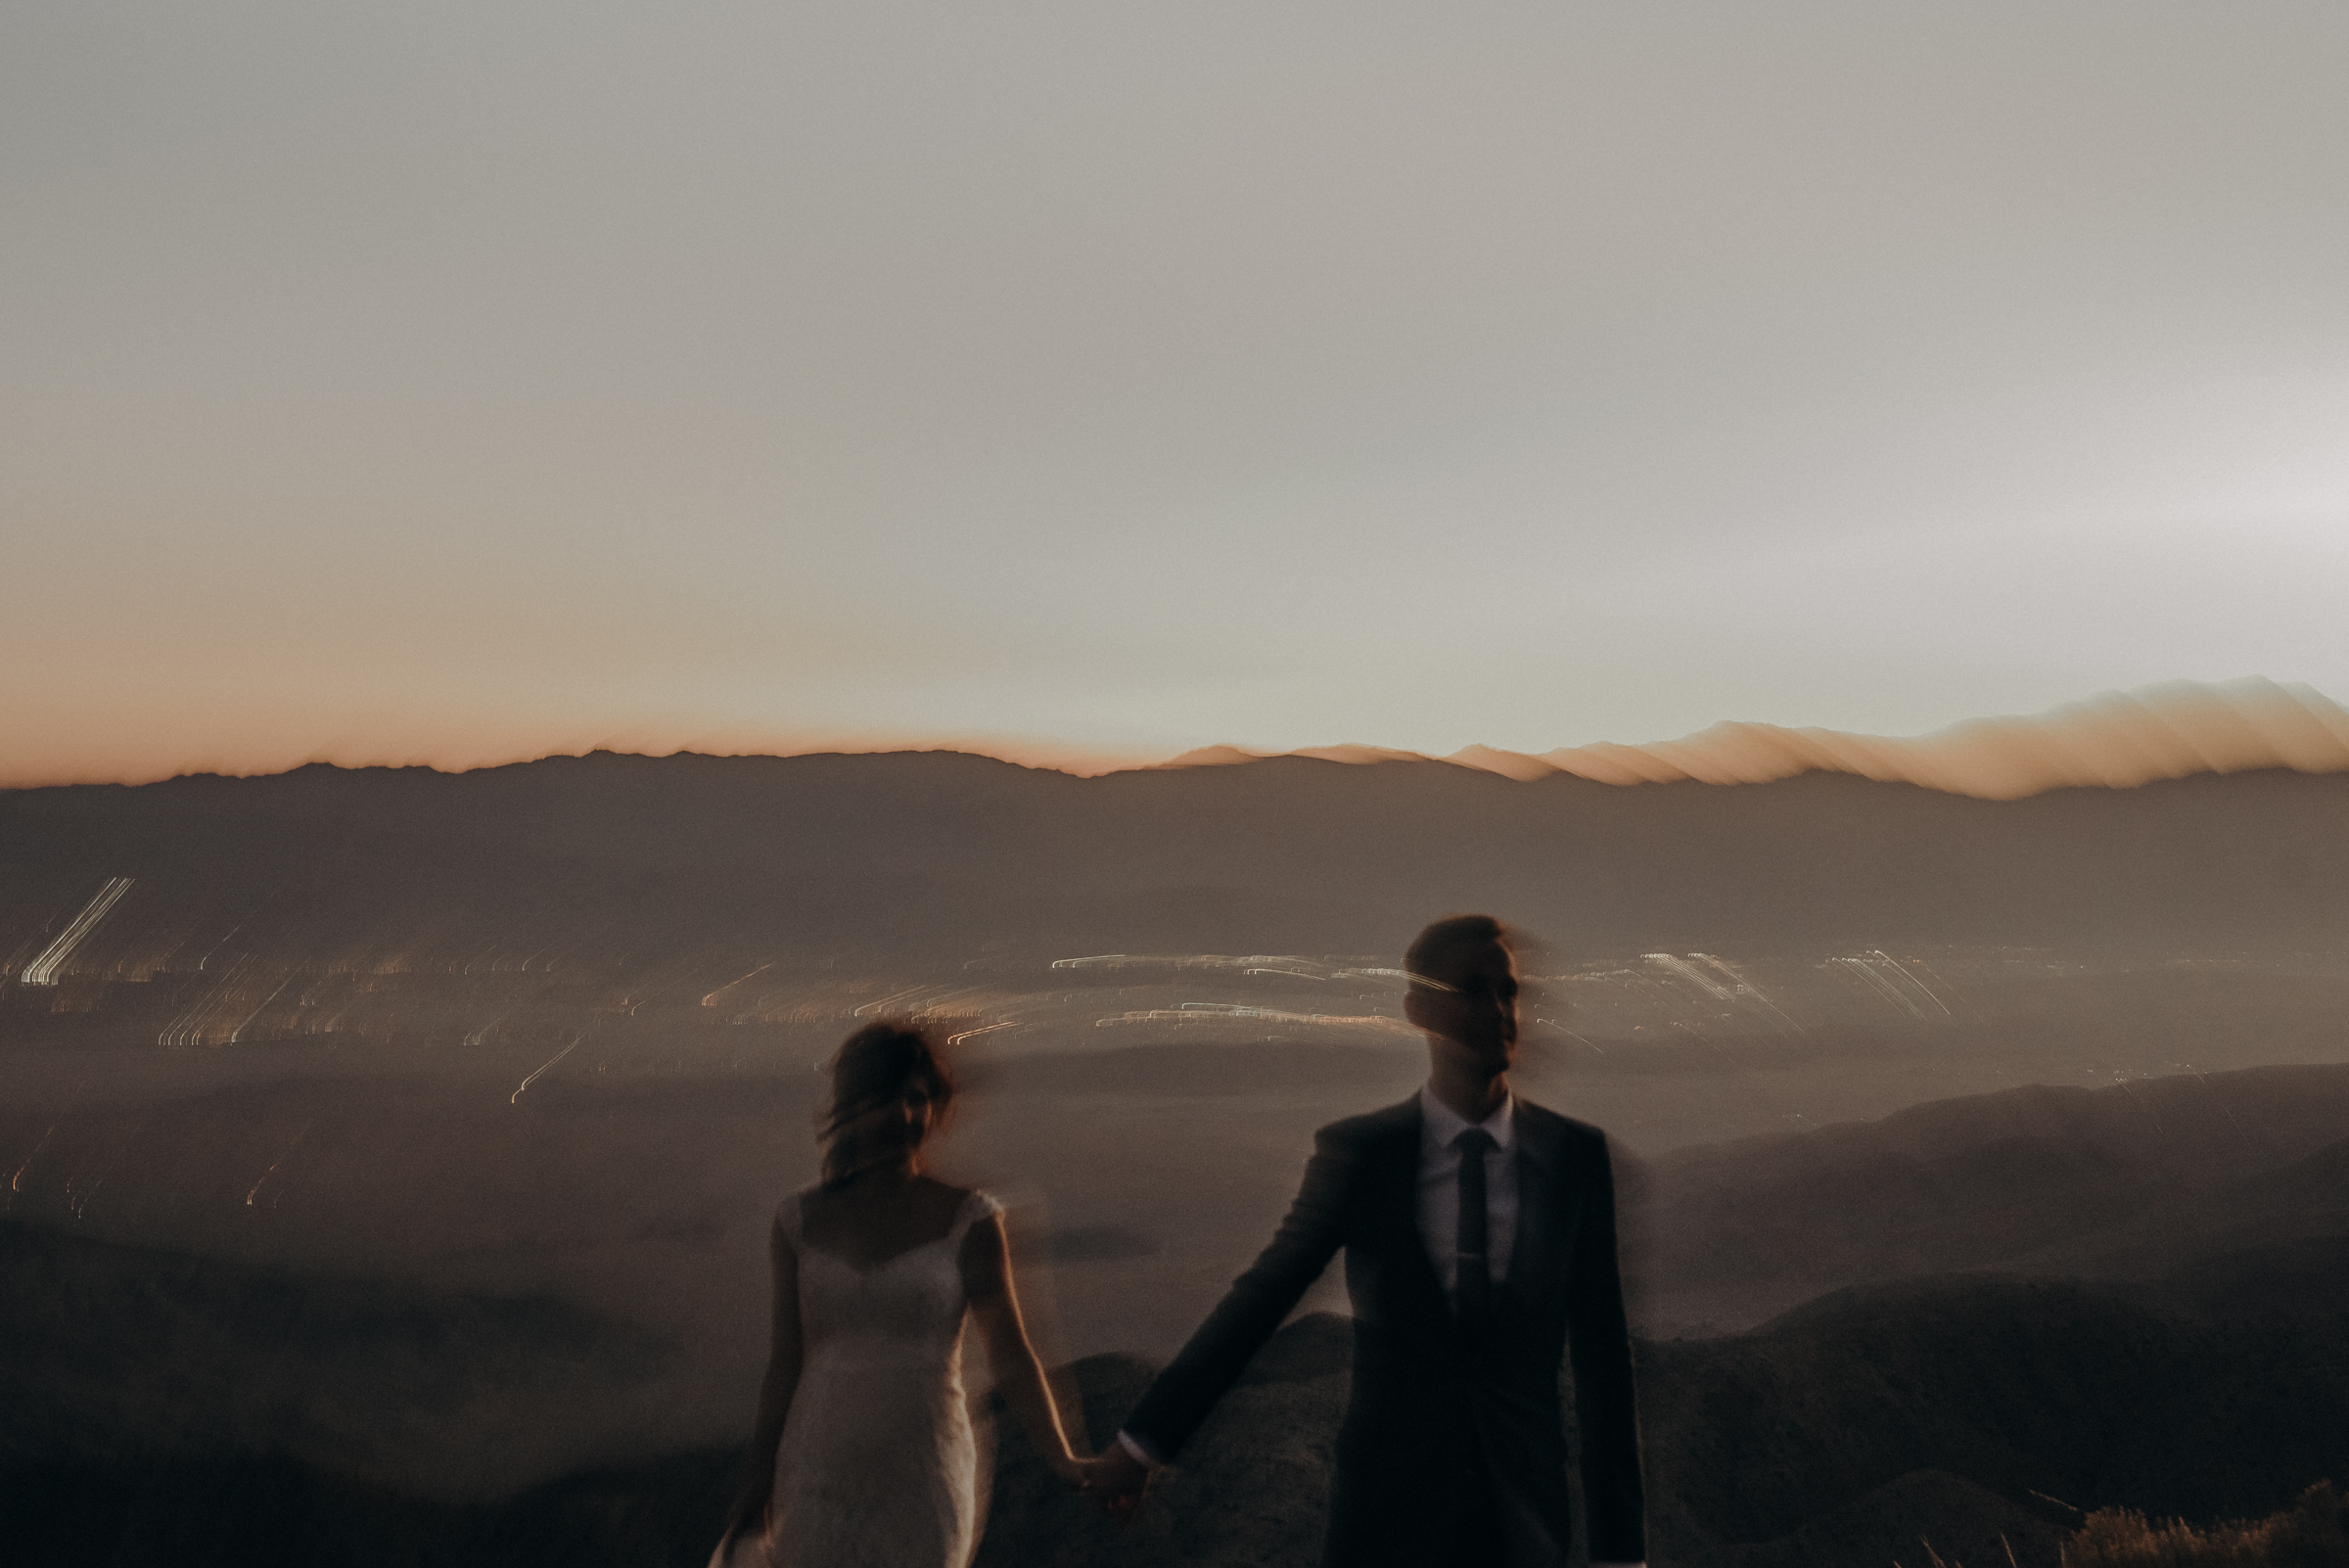 Joshua Tree Elopement - Los Angeles Wedding Photographers - IsaiahAndTaylor.com-134.jpg